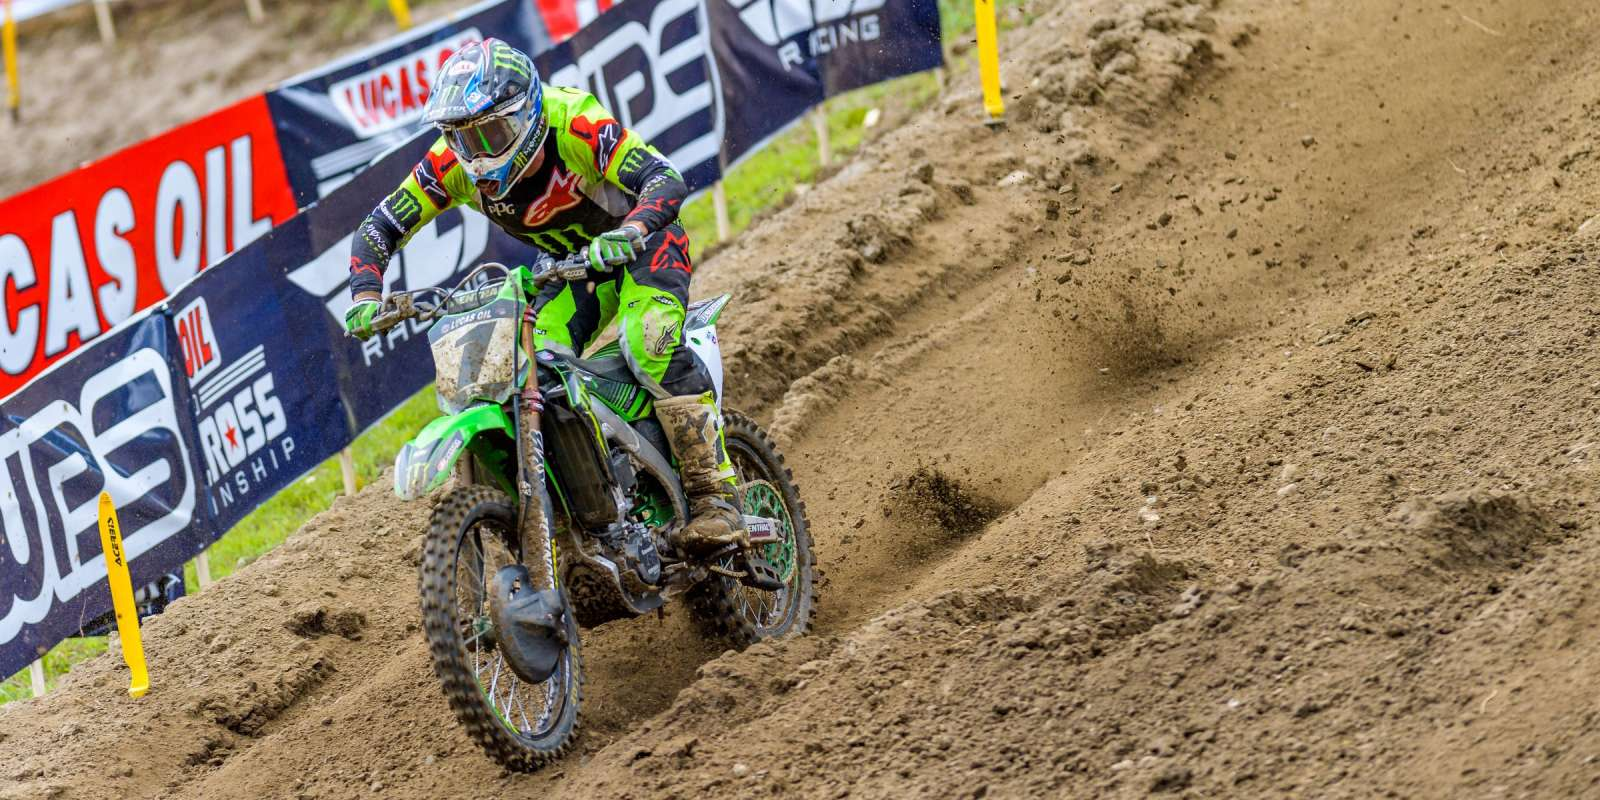 Monster athletes compete in the 2018 Lucas Oil Motocross Championship